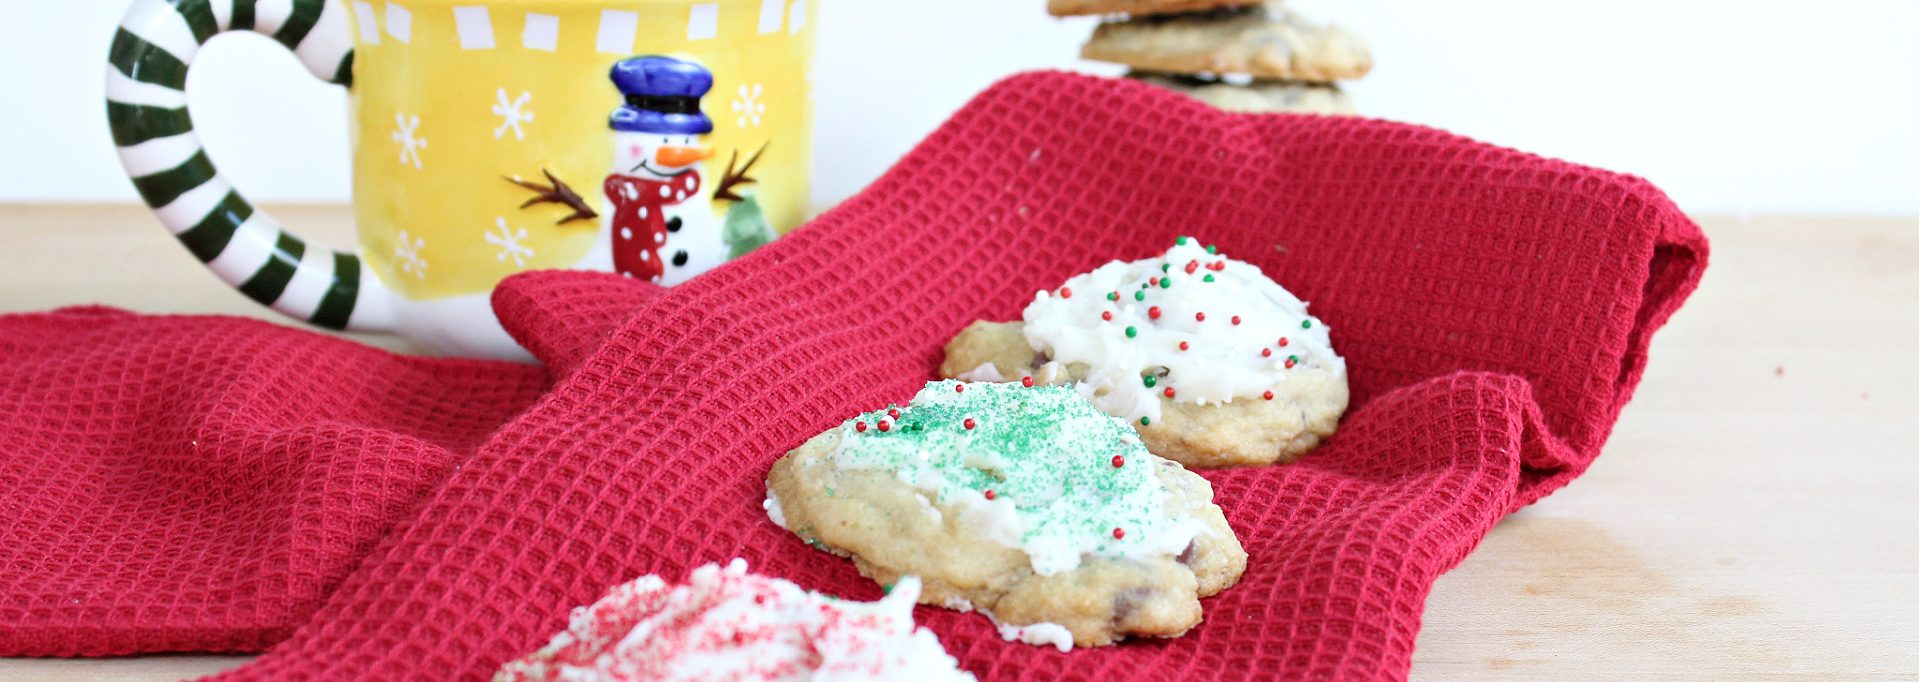 Peppermint Chocolate Chip Cookies feature